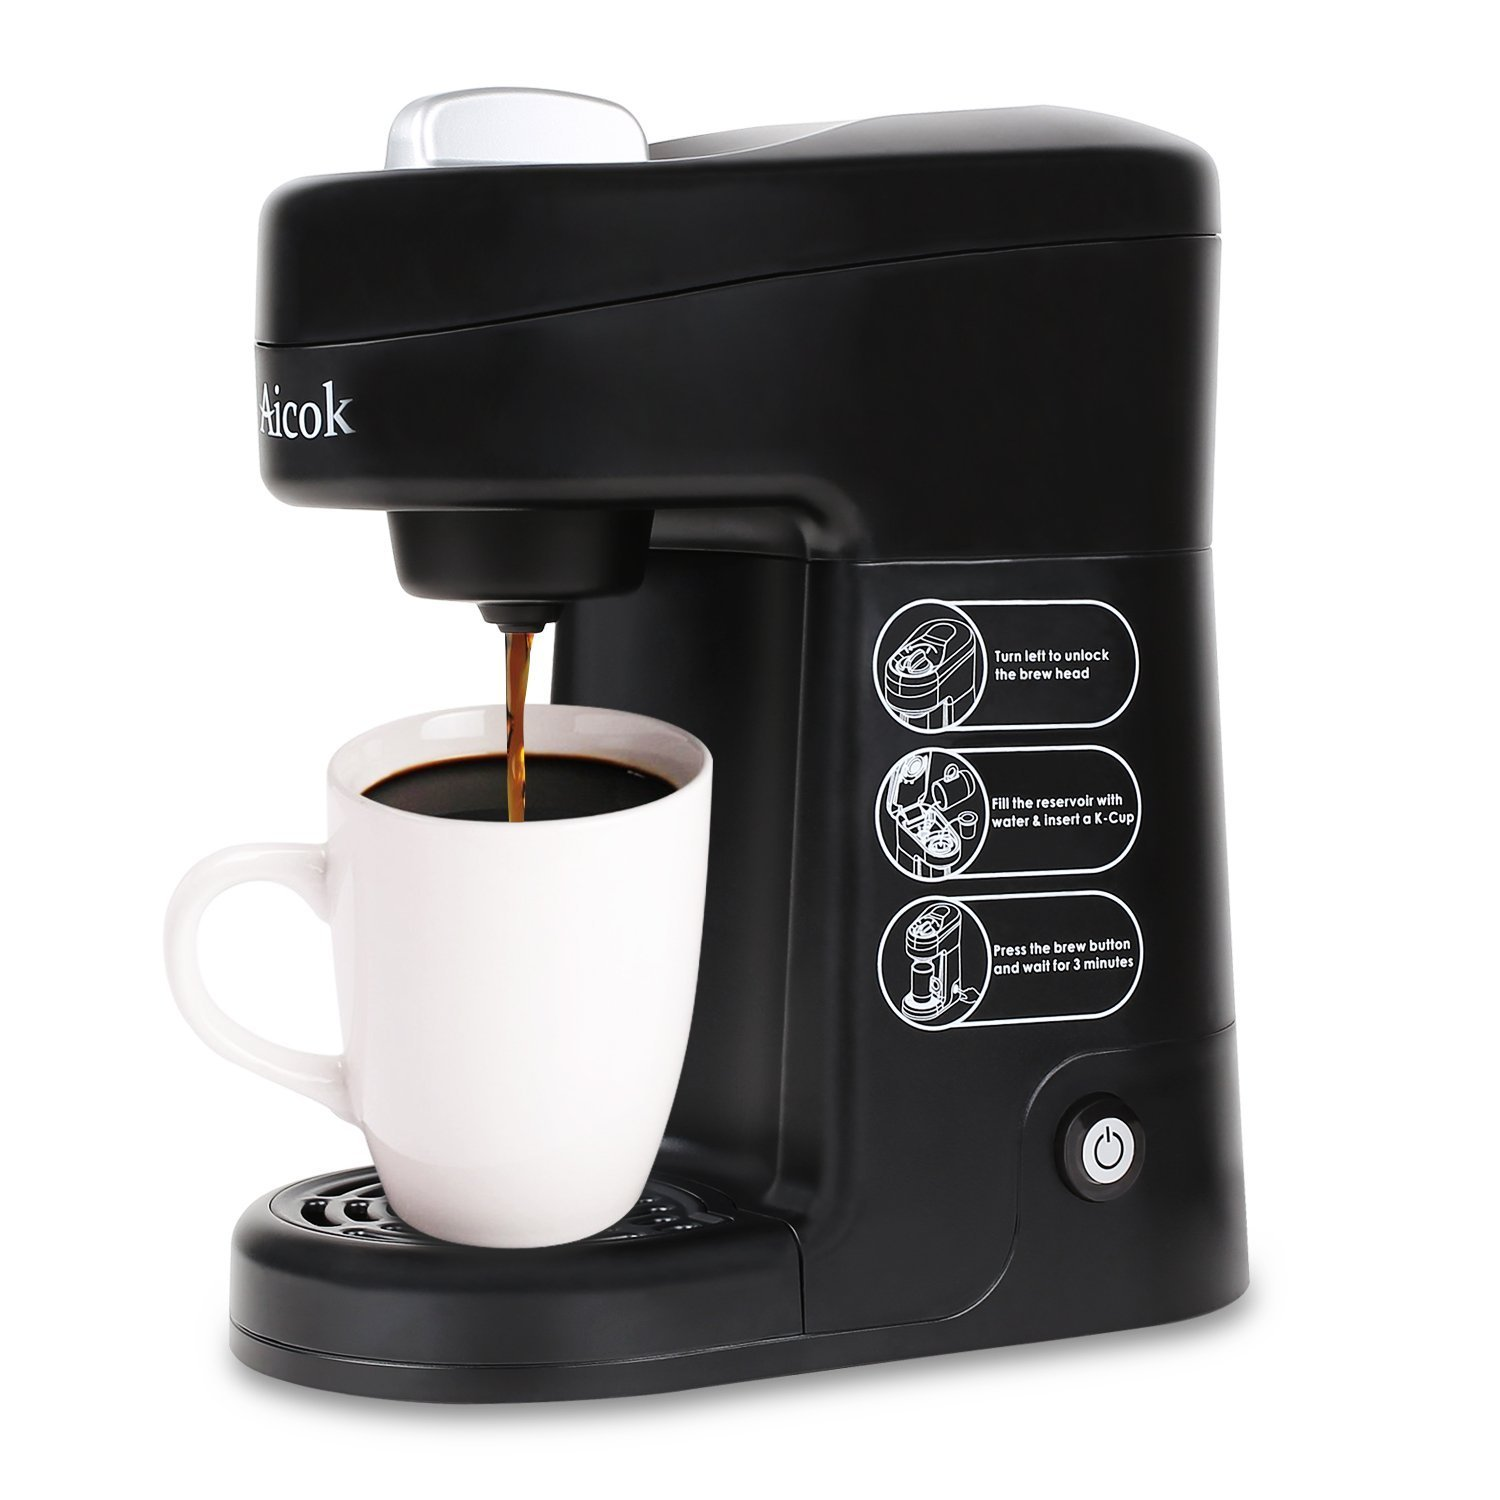 Aicok Travel-Size K-Cup Coffee Maker